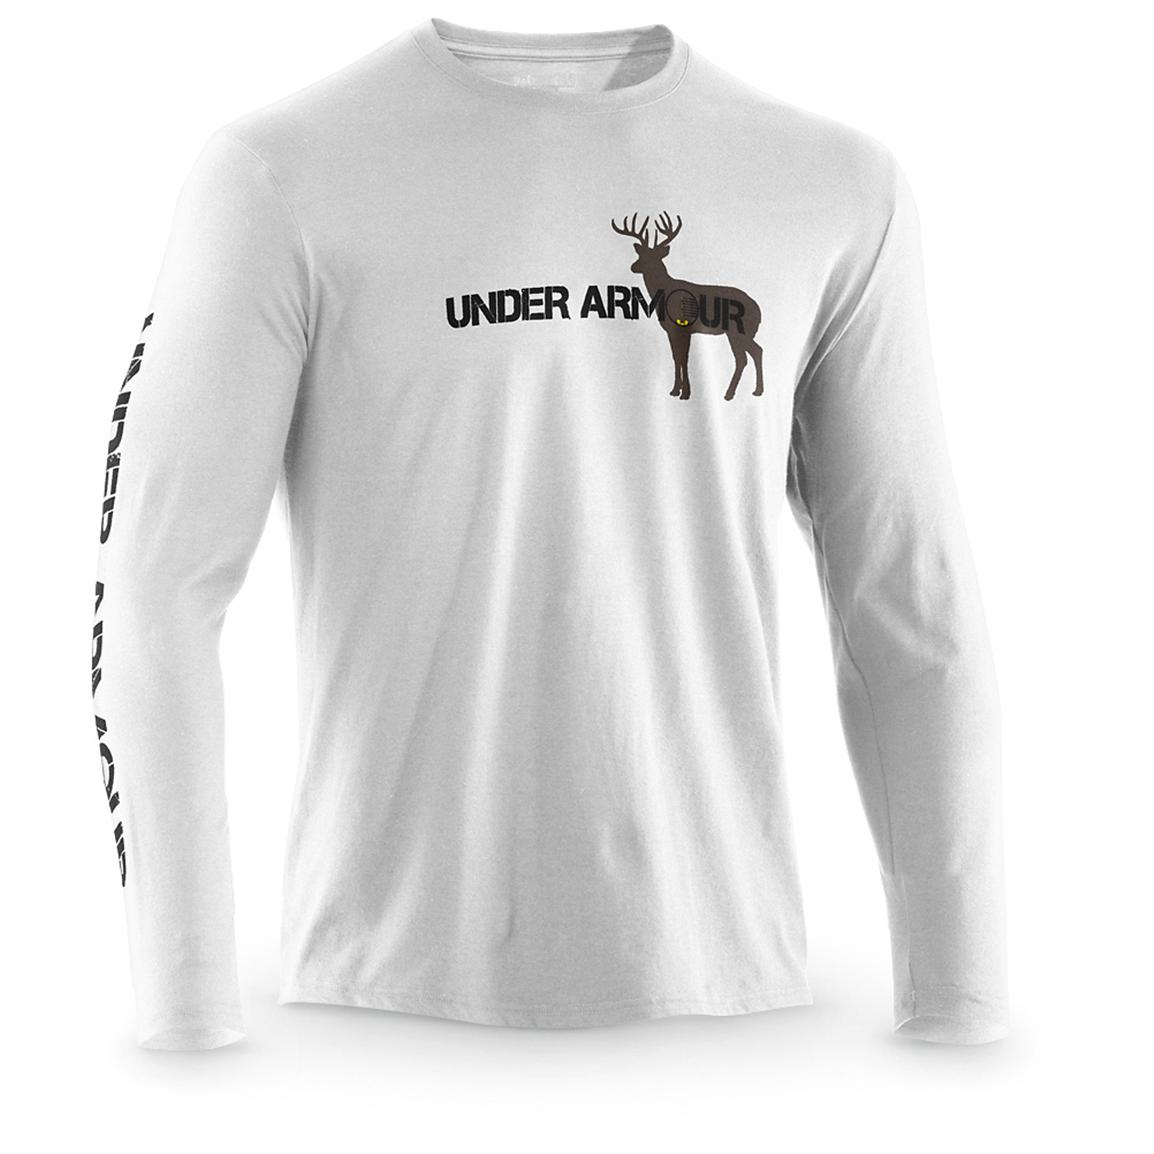 Long-sleeved Under Armour® Whitetail Crosshairs Shirt, White / Black